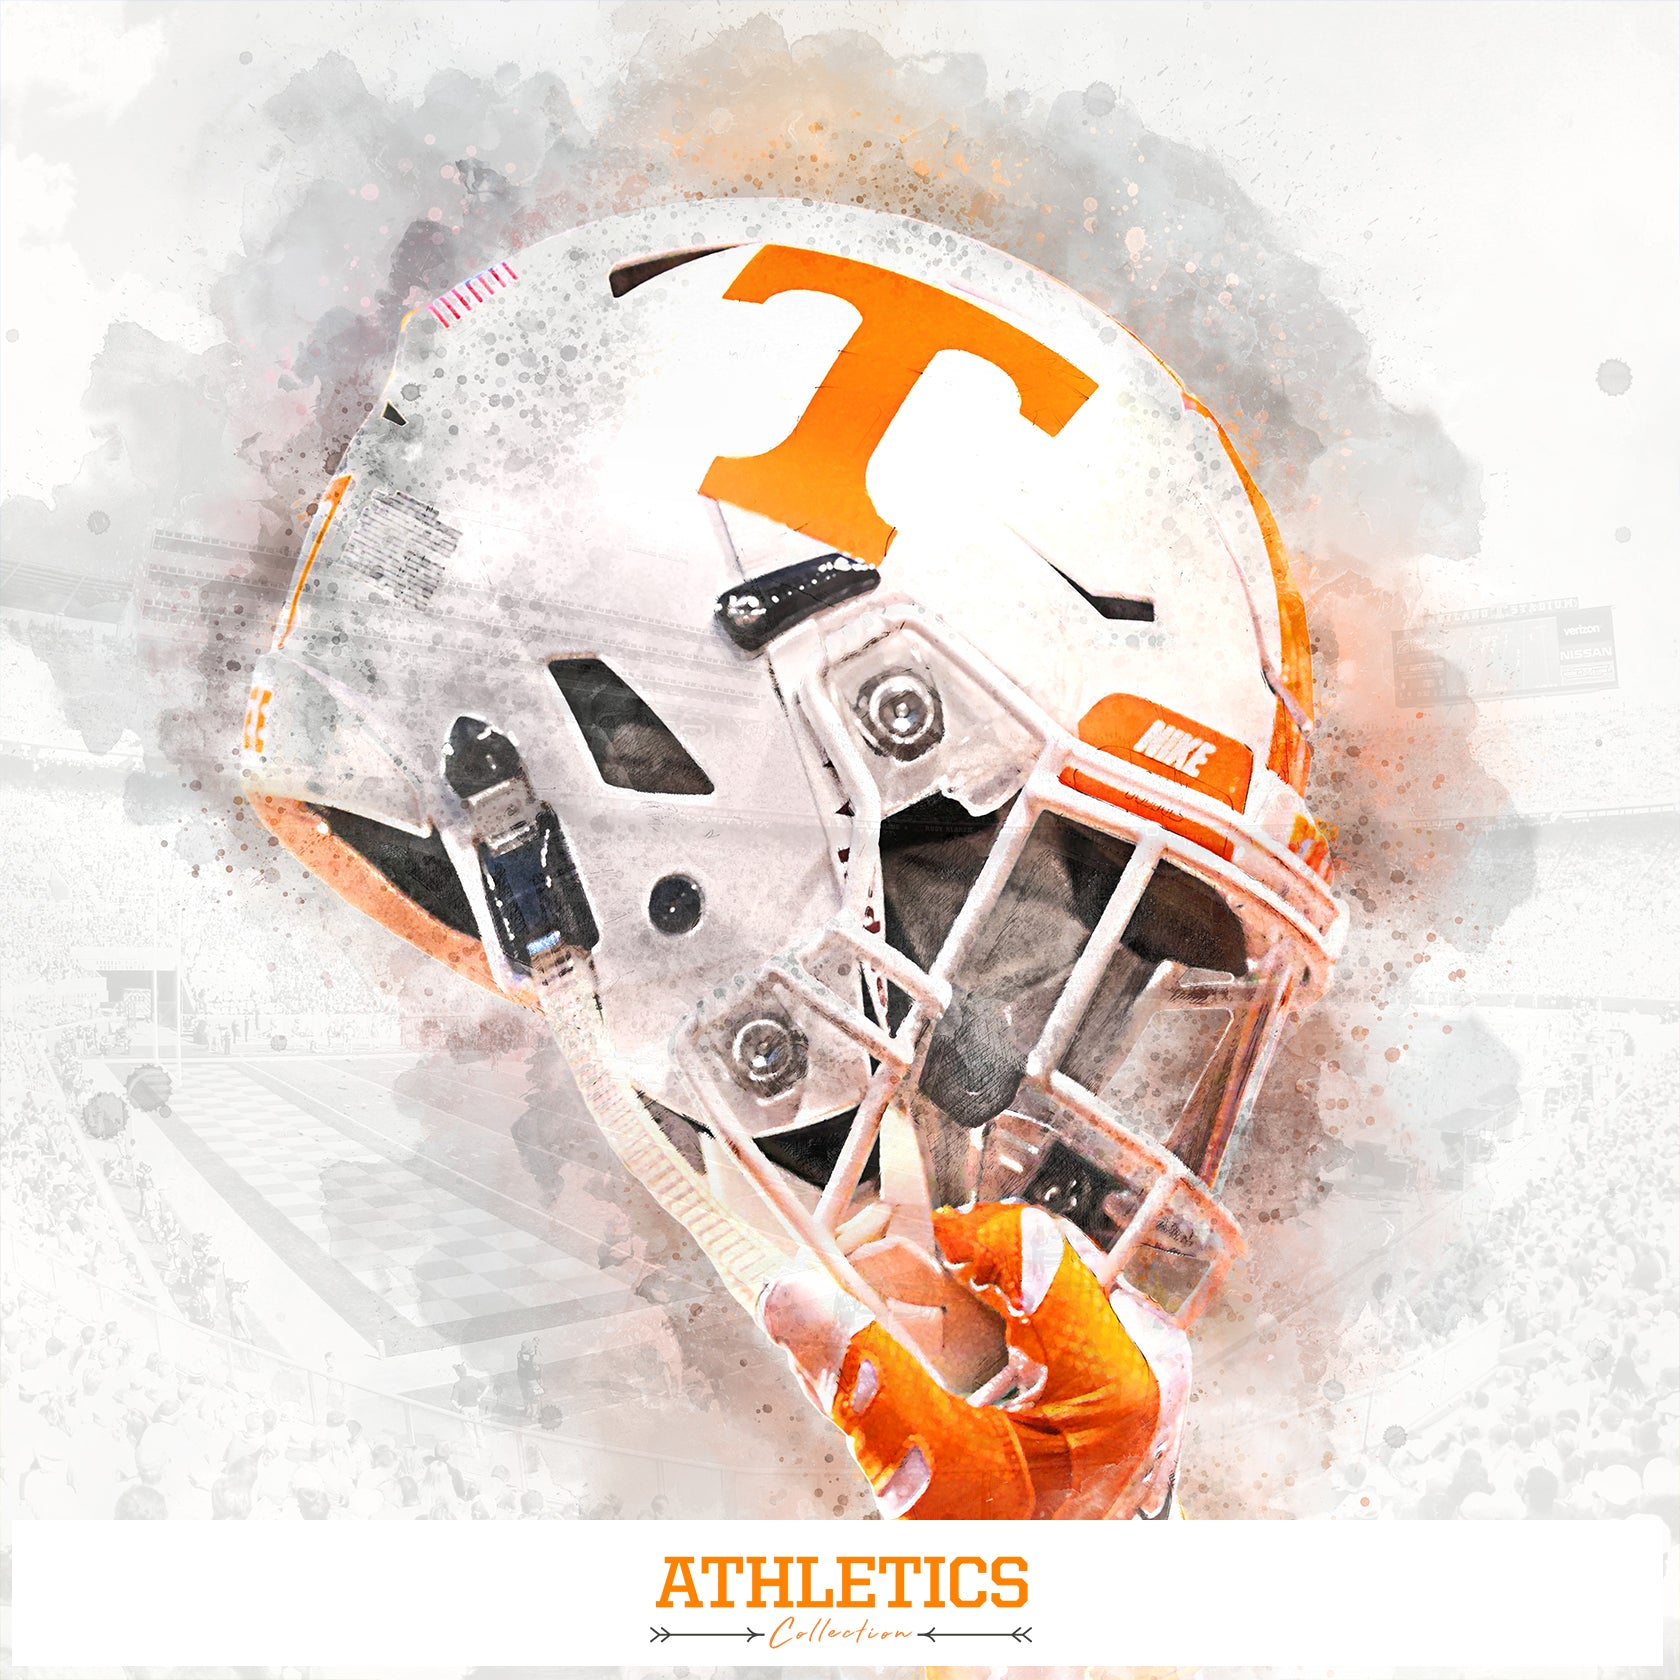 Tennessee Vols - Athletics